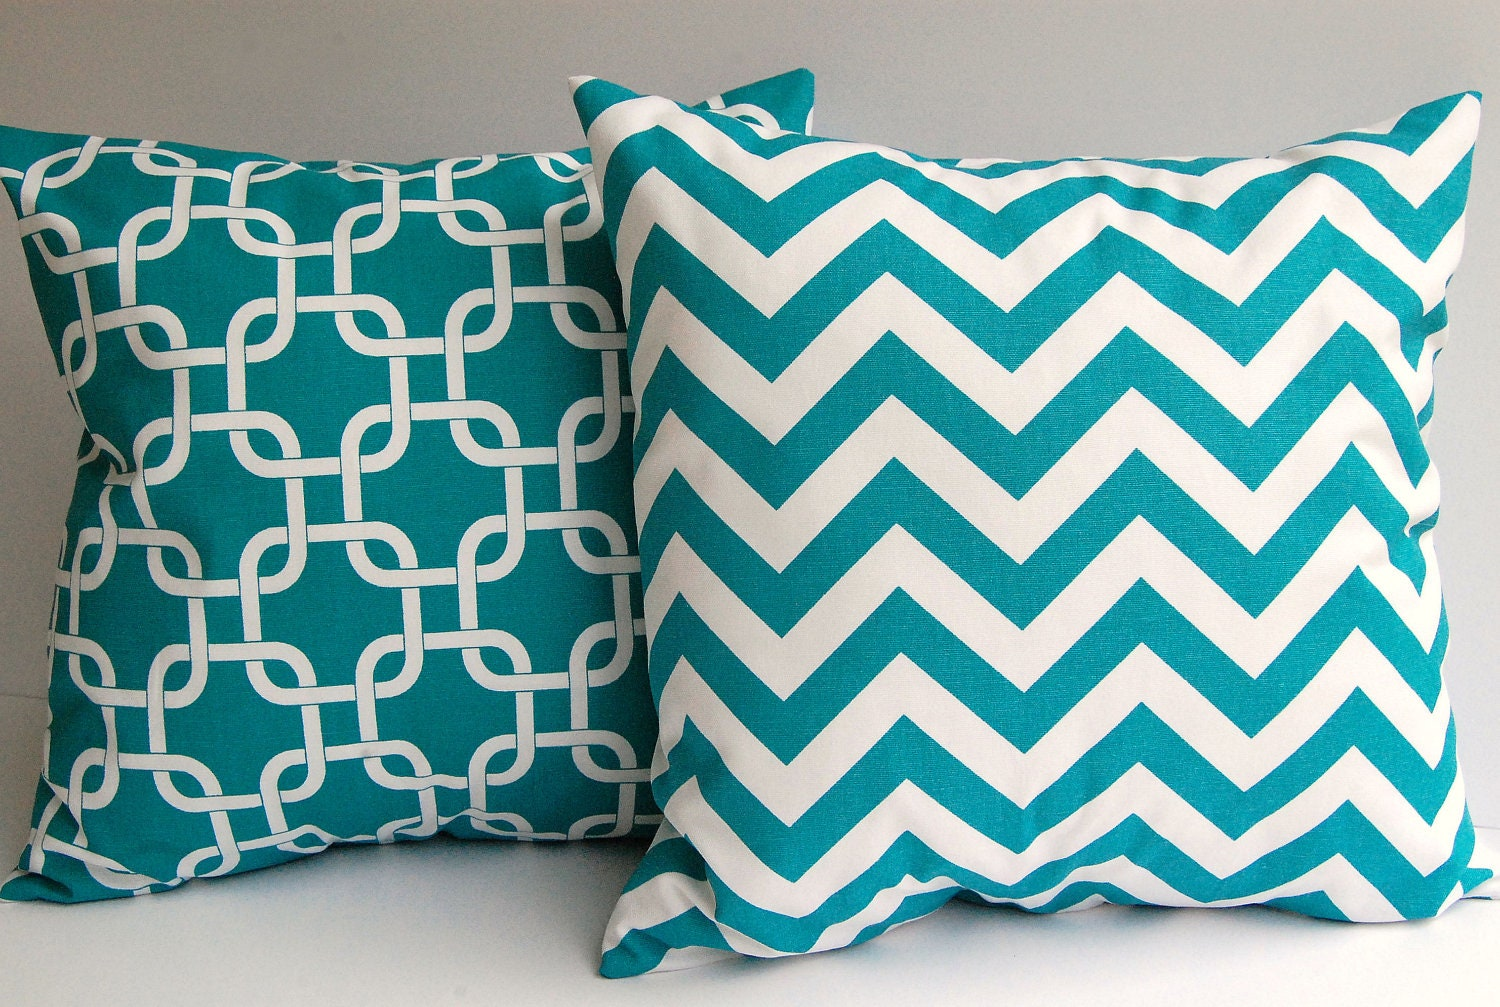 Throw Pillow Covers Set : Turquoise throw pillow covers set of two 18 x by ThePillowPeople